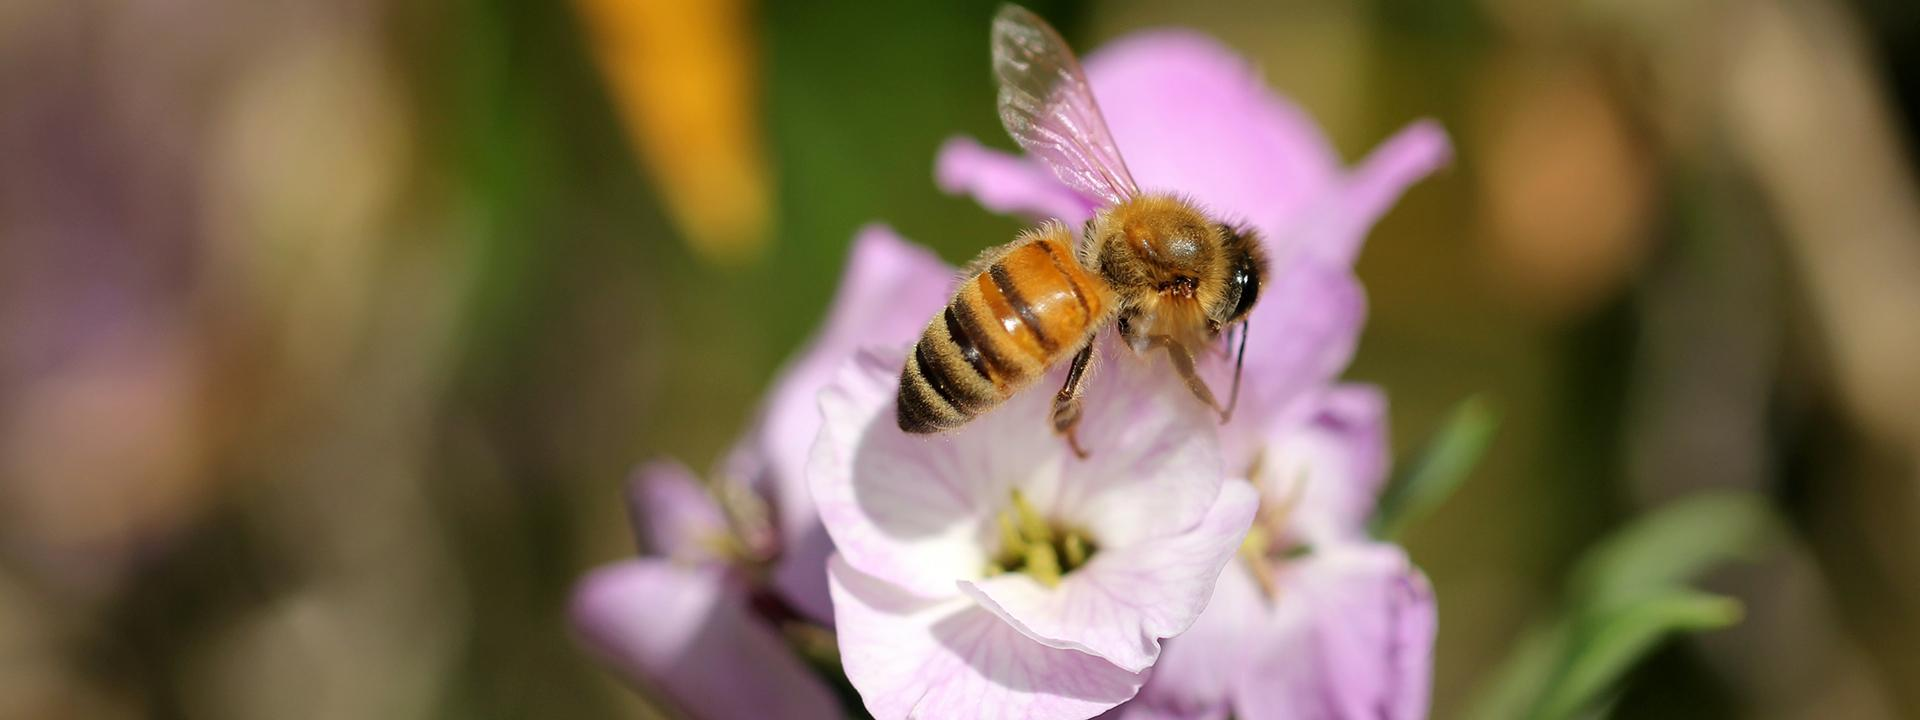 A honey bee on top of a lavender colored flower